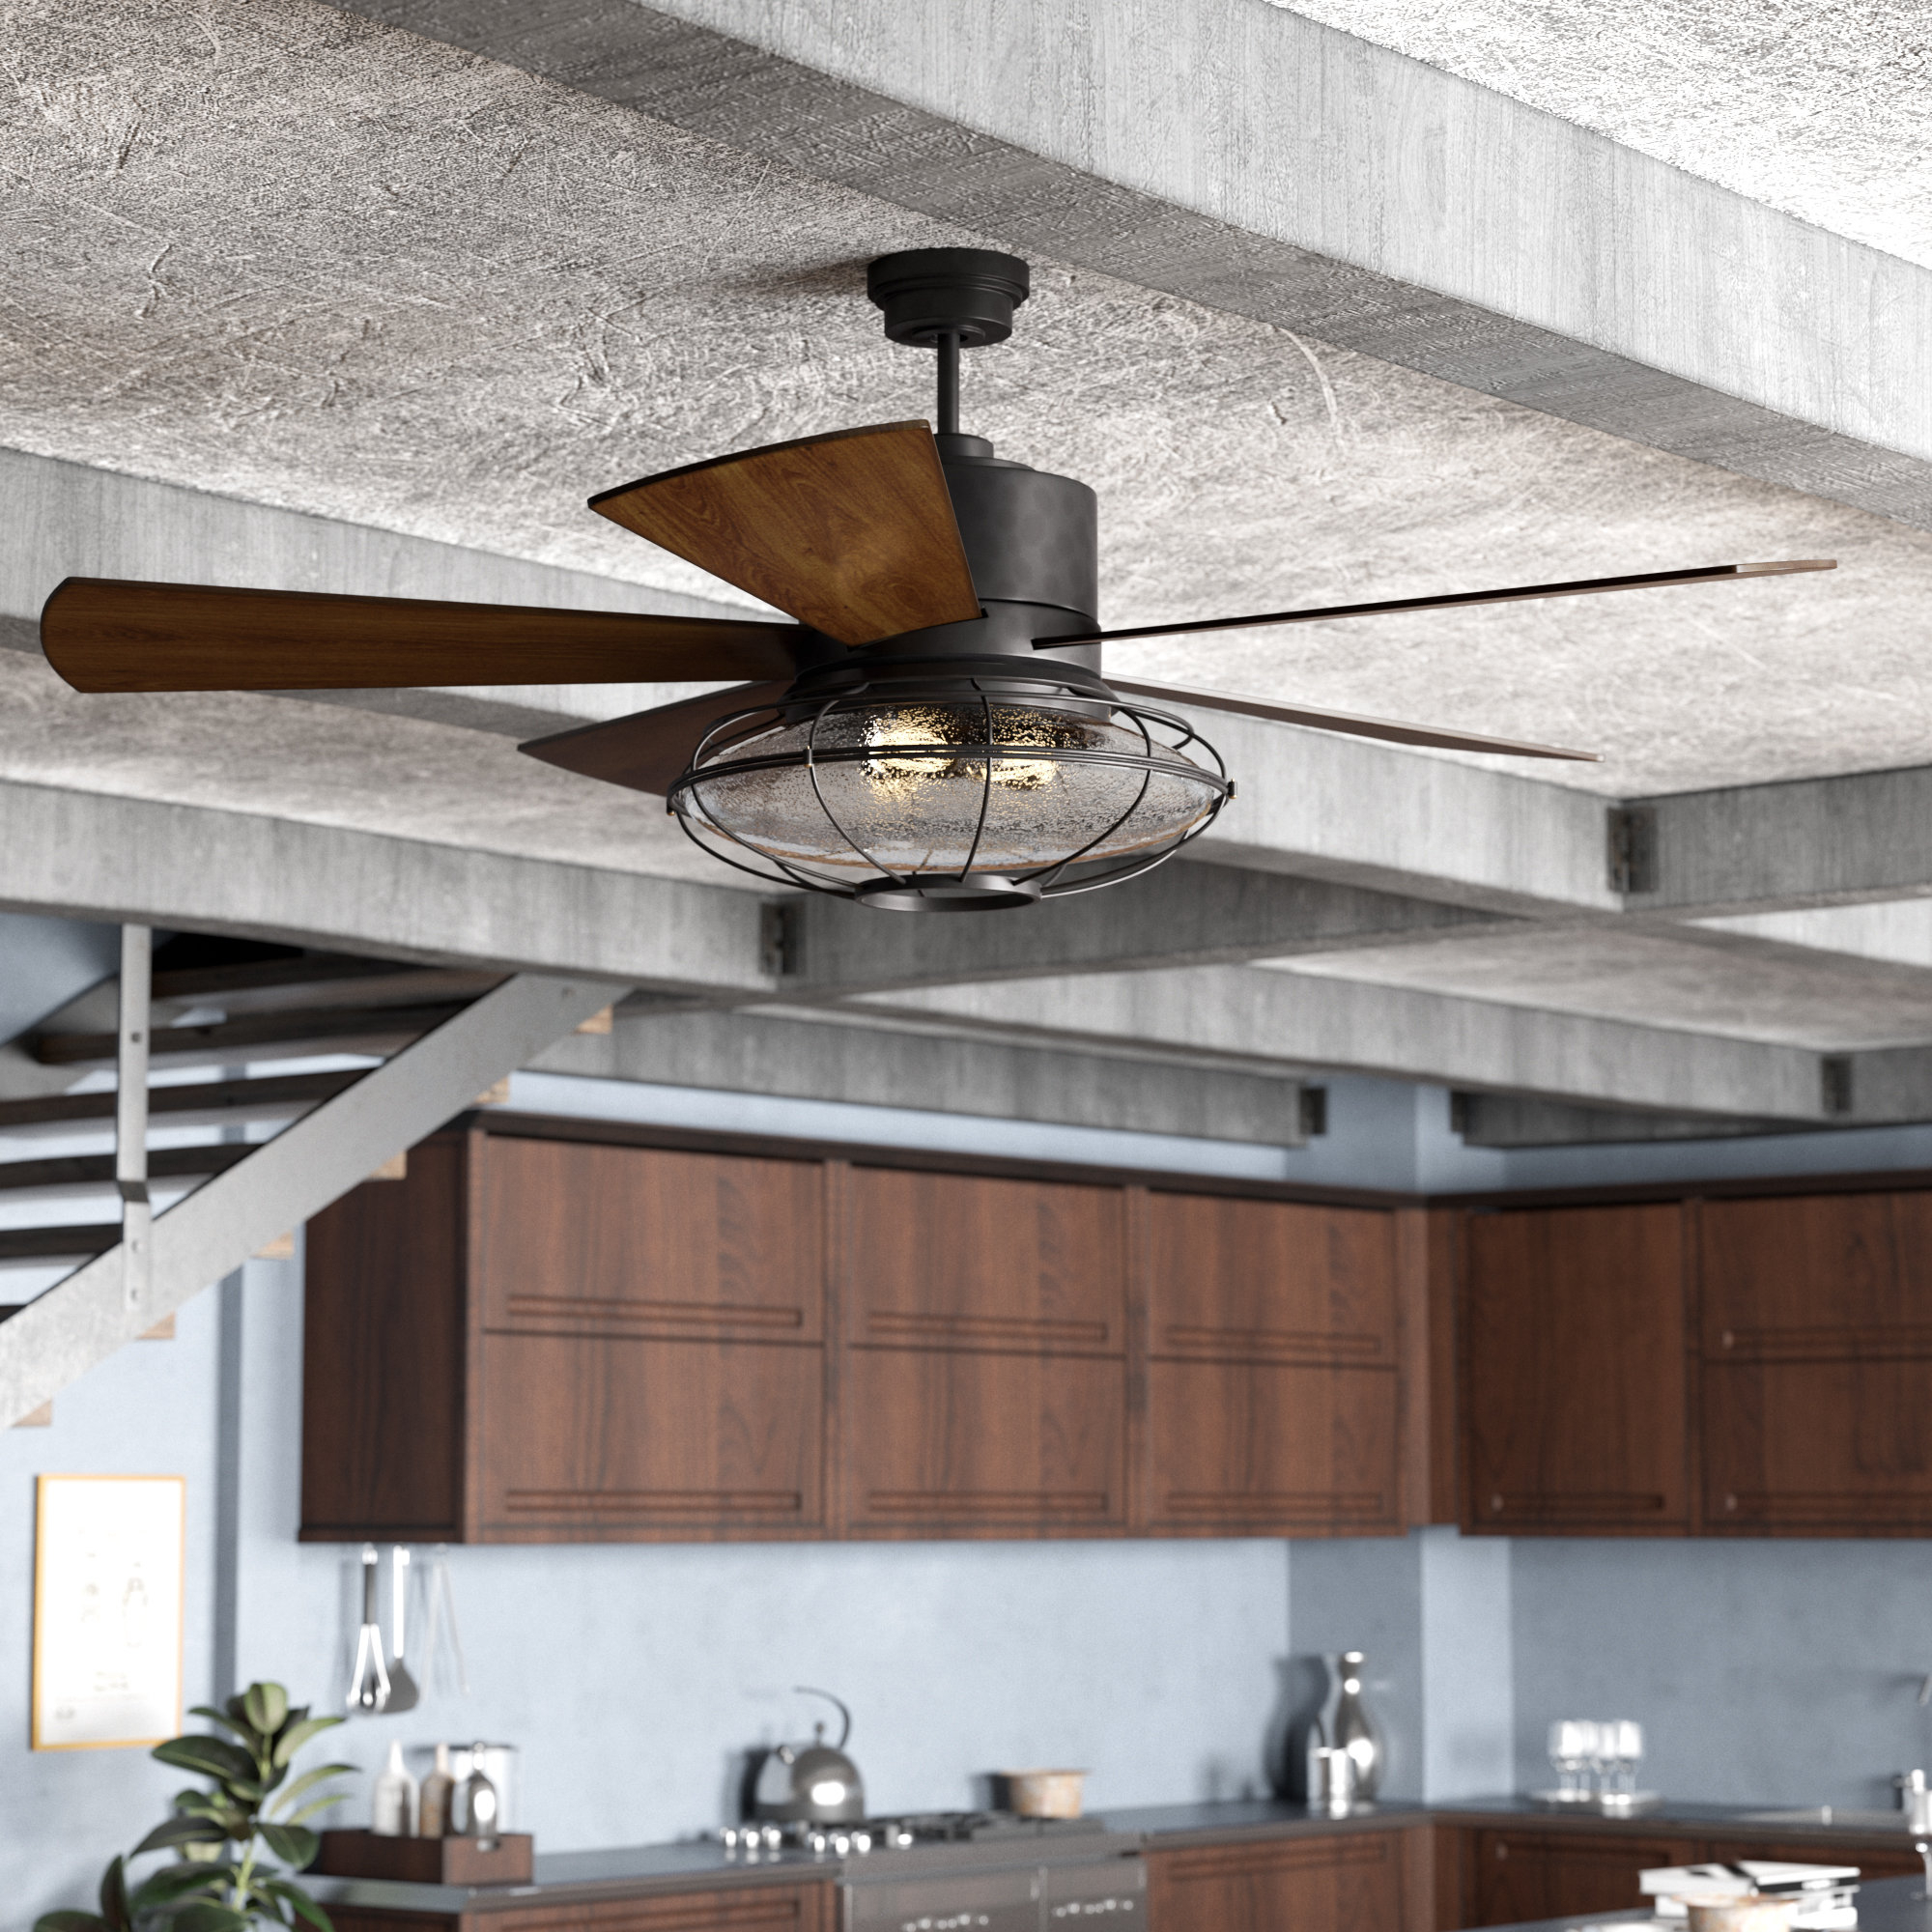 """56"""" Roberts 5 Blade Ceiling Fan With Remote Control, Light Kit Included Throughout Most Up To Date Roberts 5 Blade Ceiling Fans (View 6 of 20)"""